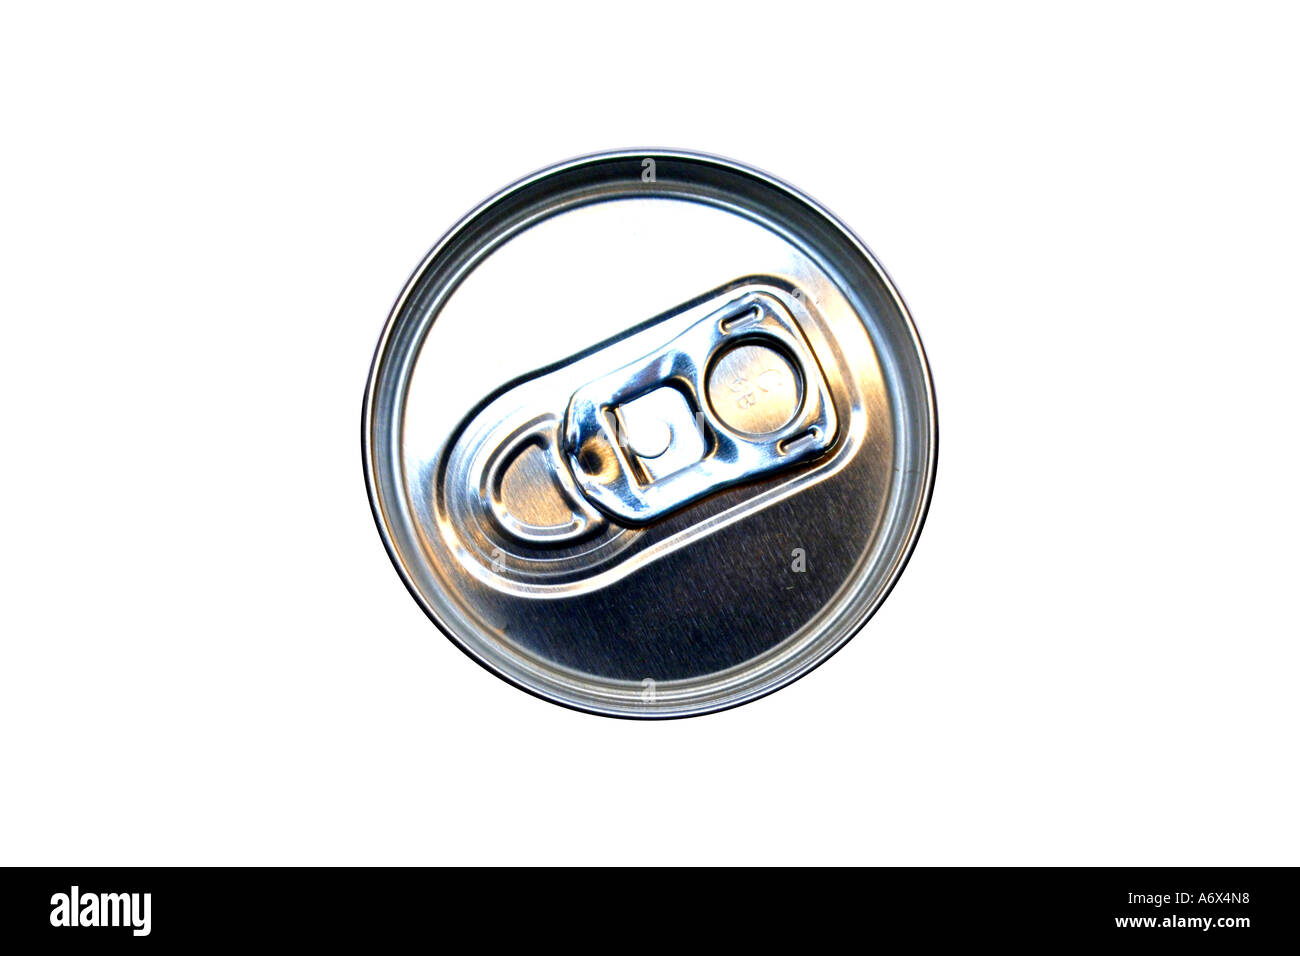 A group of Aluminum Can top and its pull tab. - Stock Image